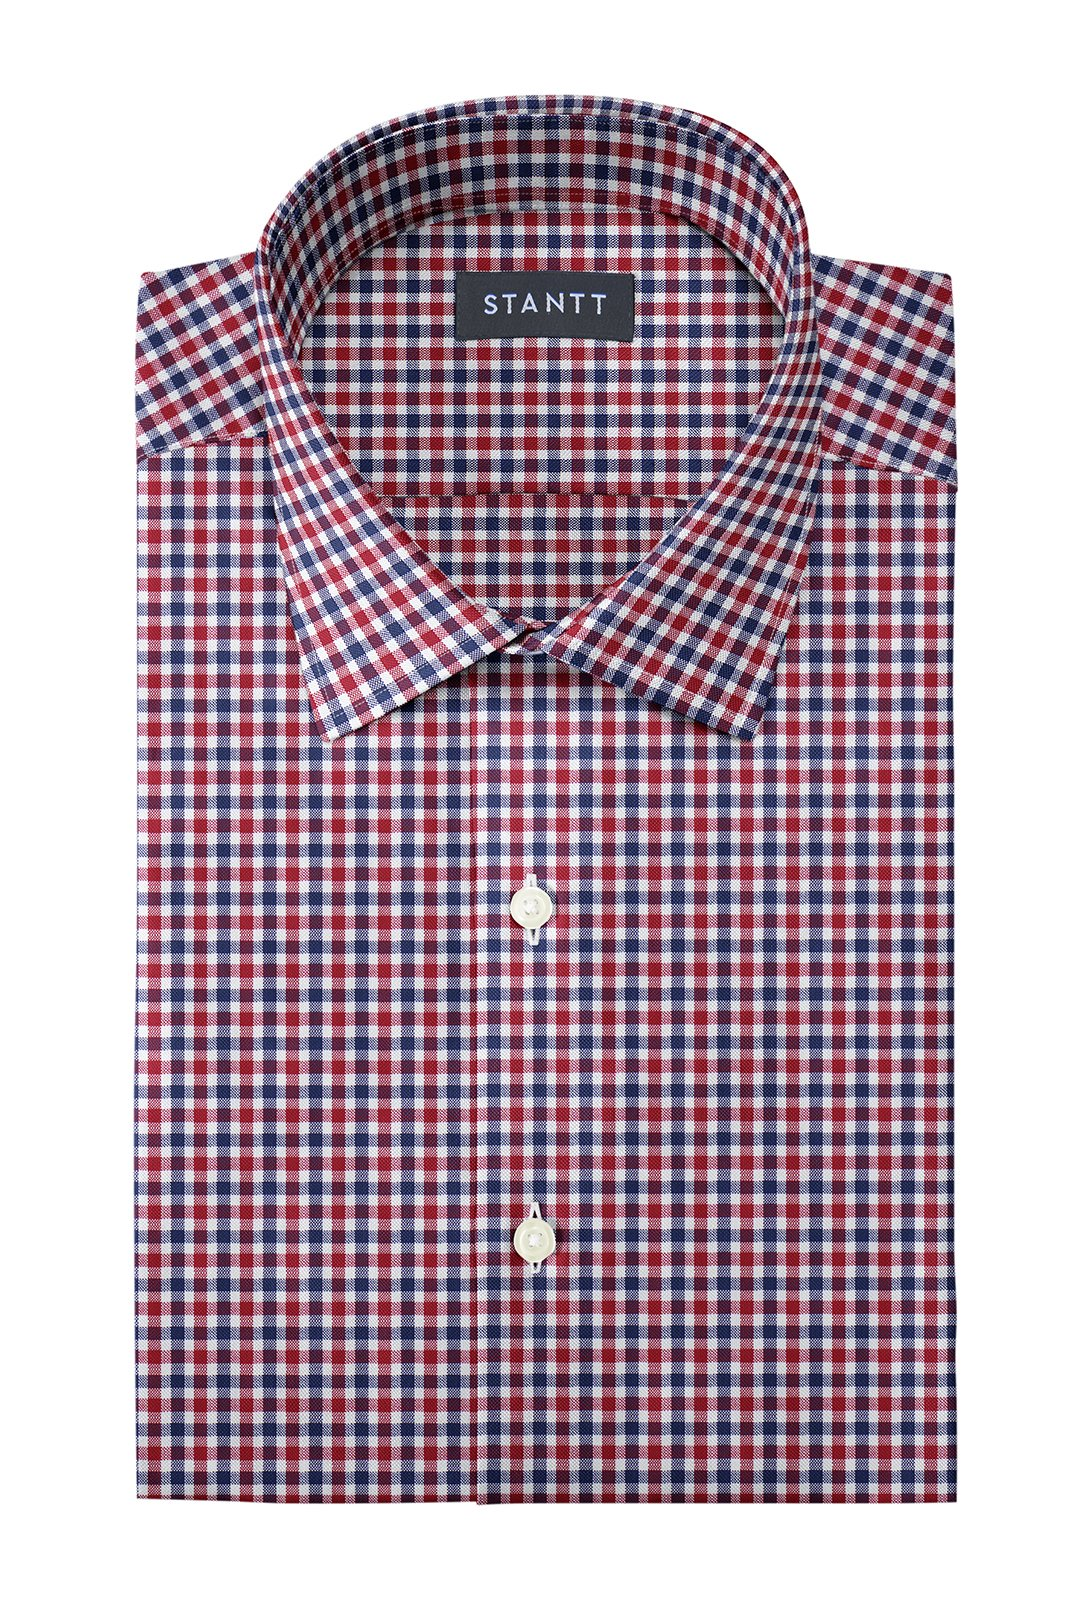 Red and Navy Club Check Oxford: Modified-Spread Collar, French Cuff